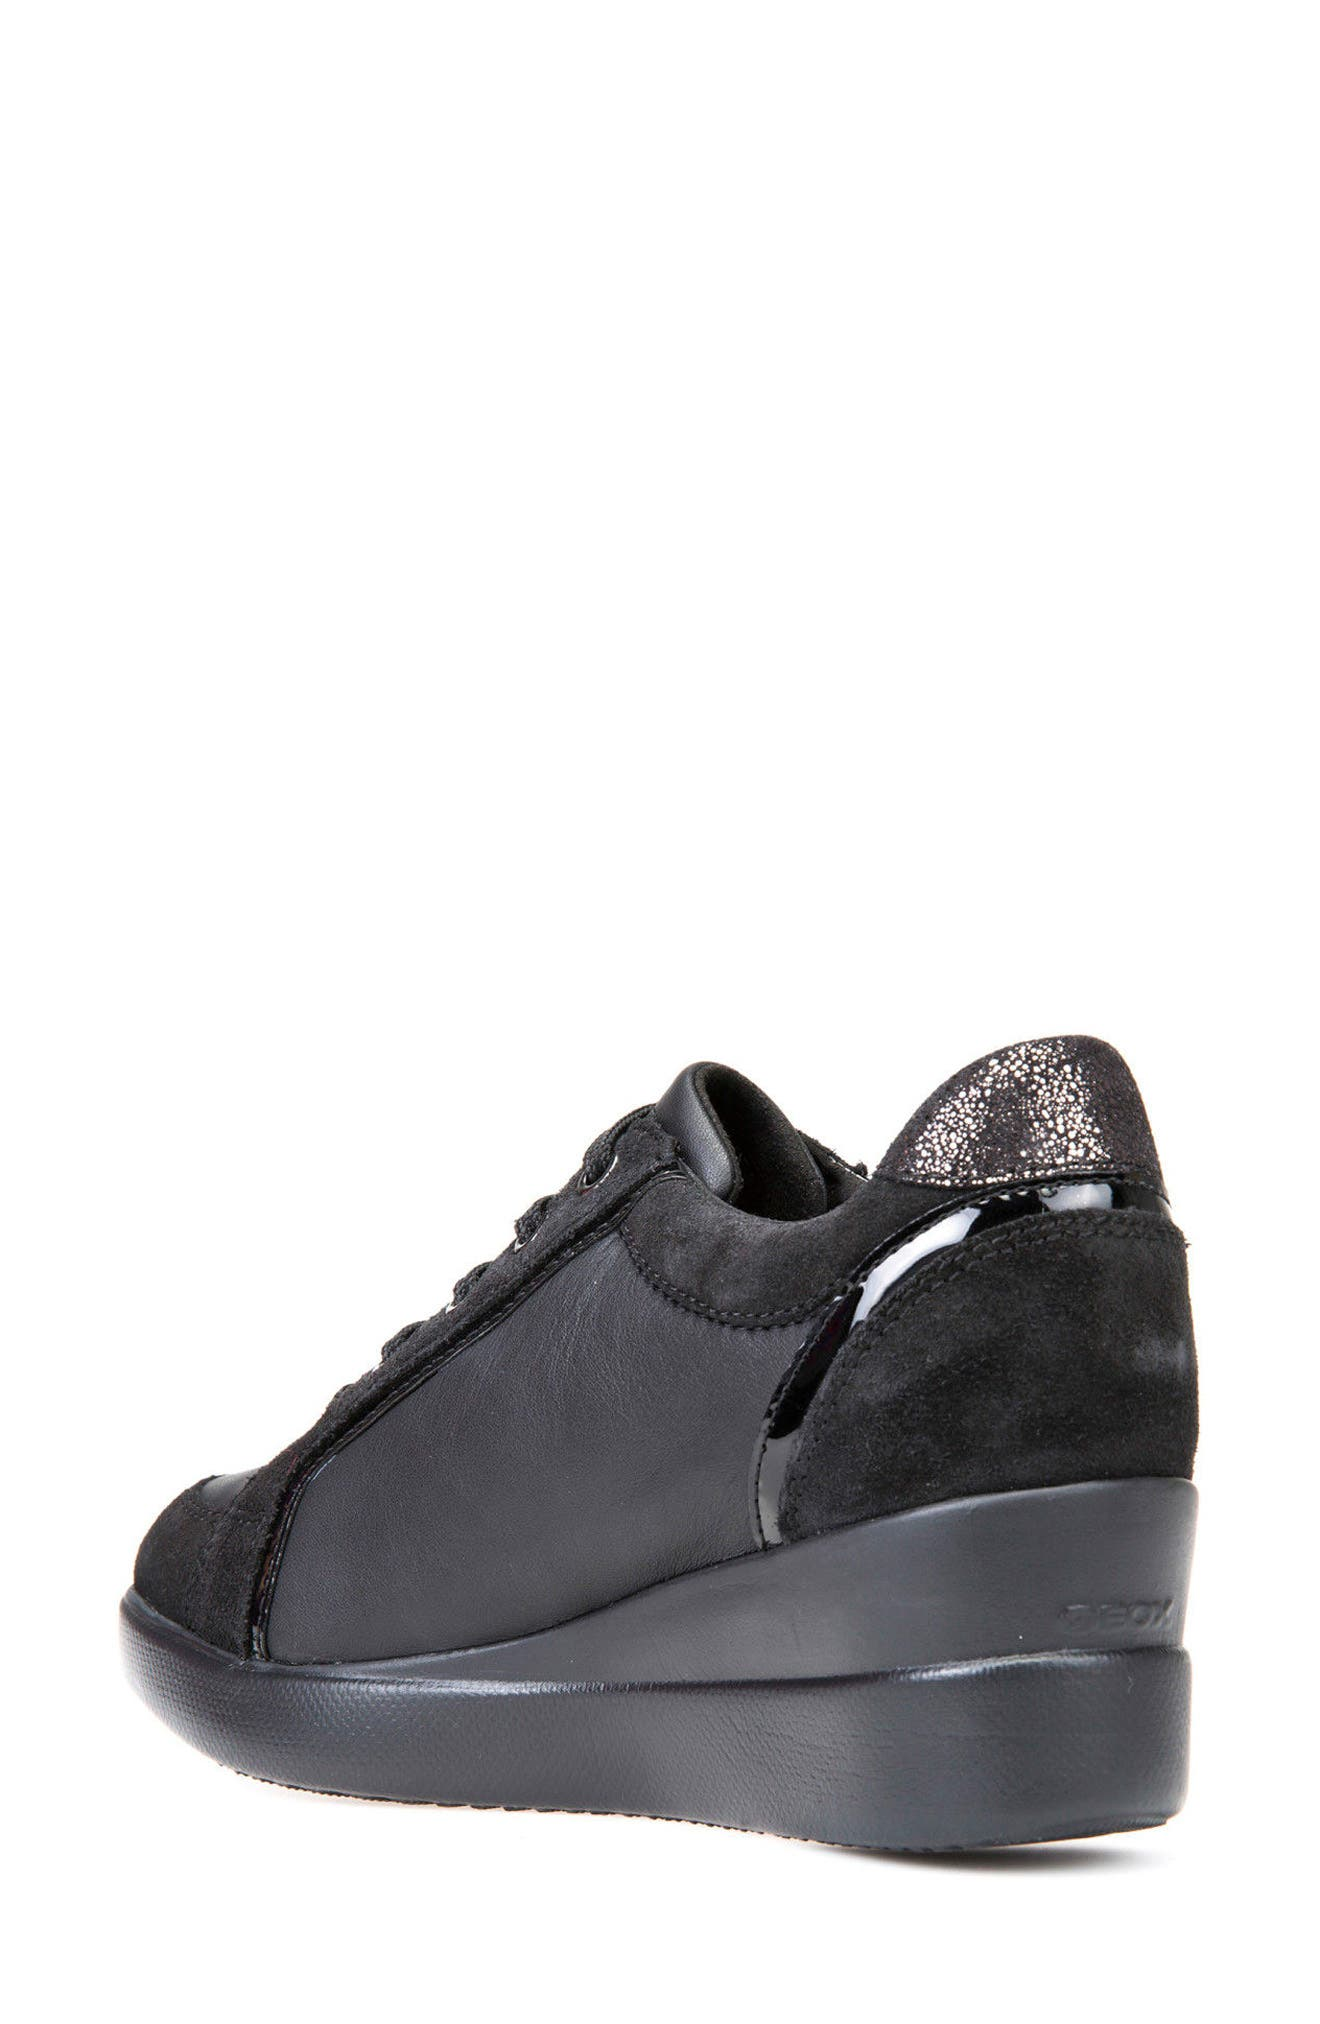 Stardust Wedge Sneaker,                             Alternate thumbnail 2, color,                             001